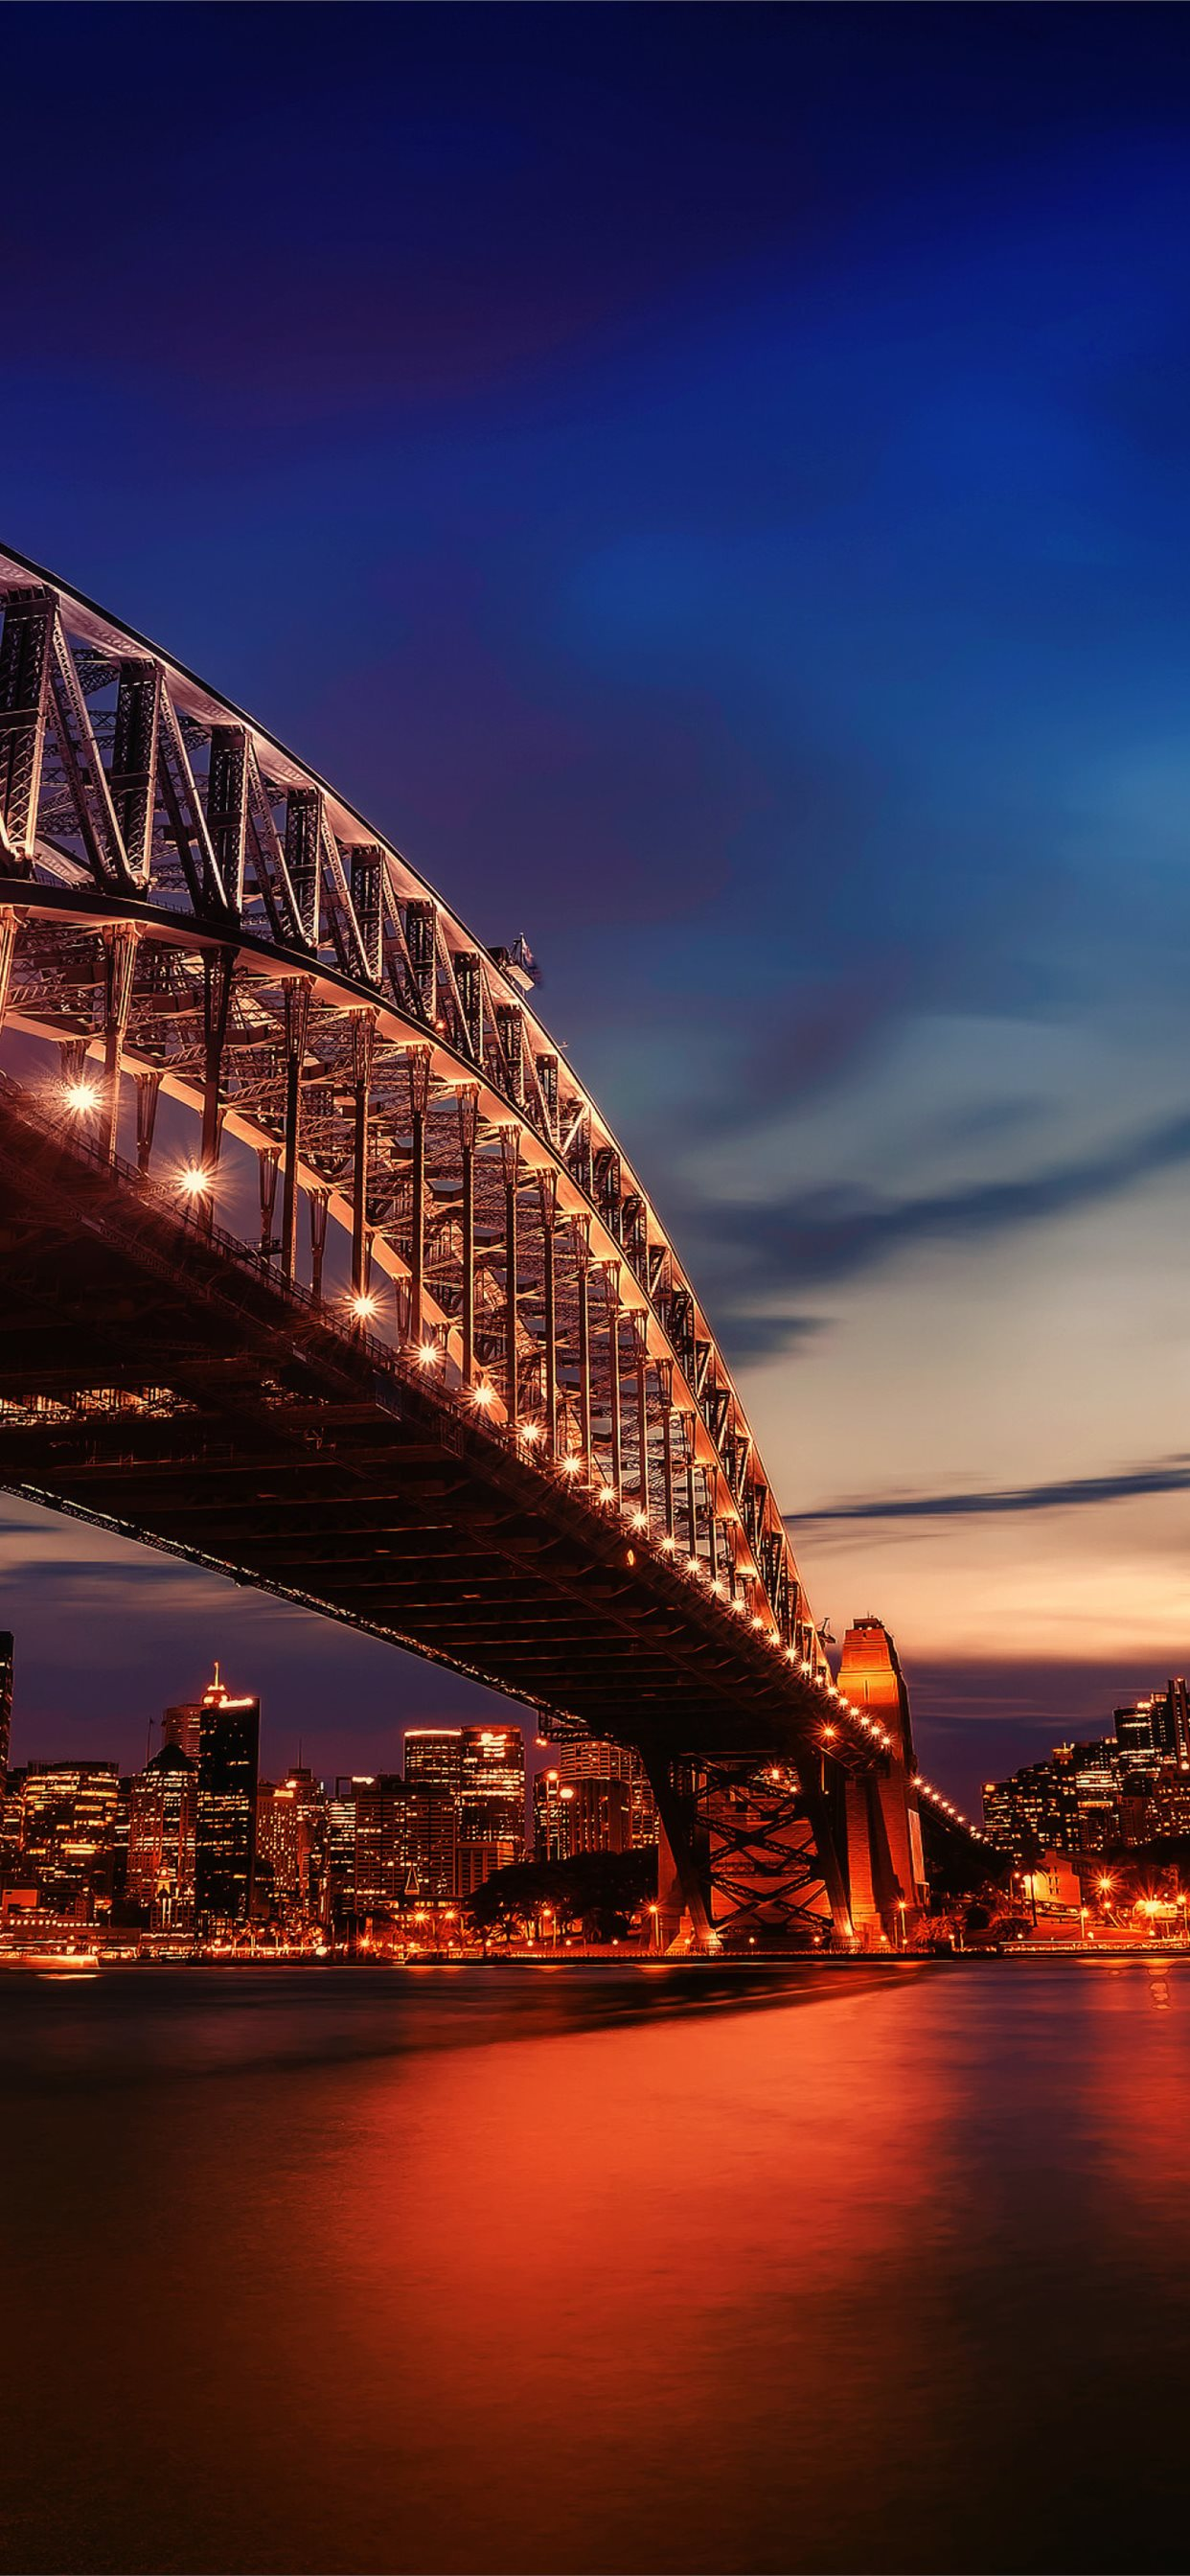 City Lights Sydney Harbour Bridge 4k Samsung Galax Iphone X Wallpapers Free Download